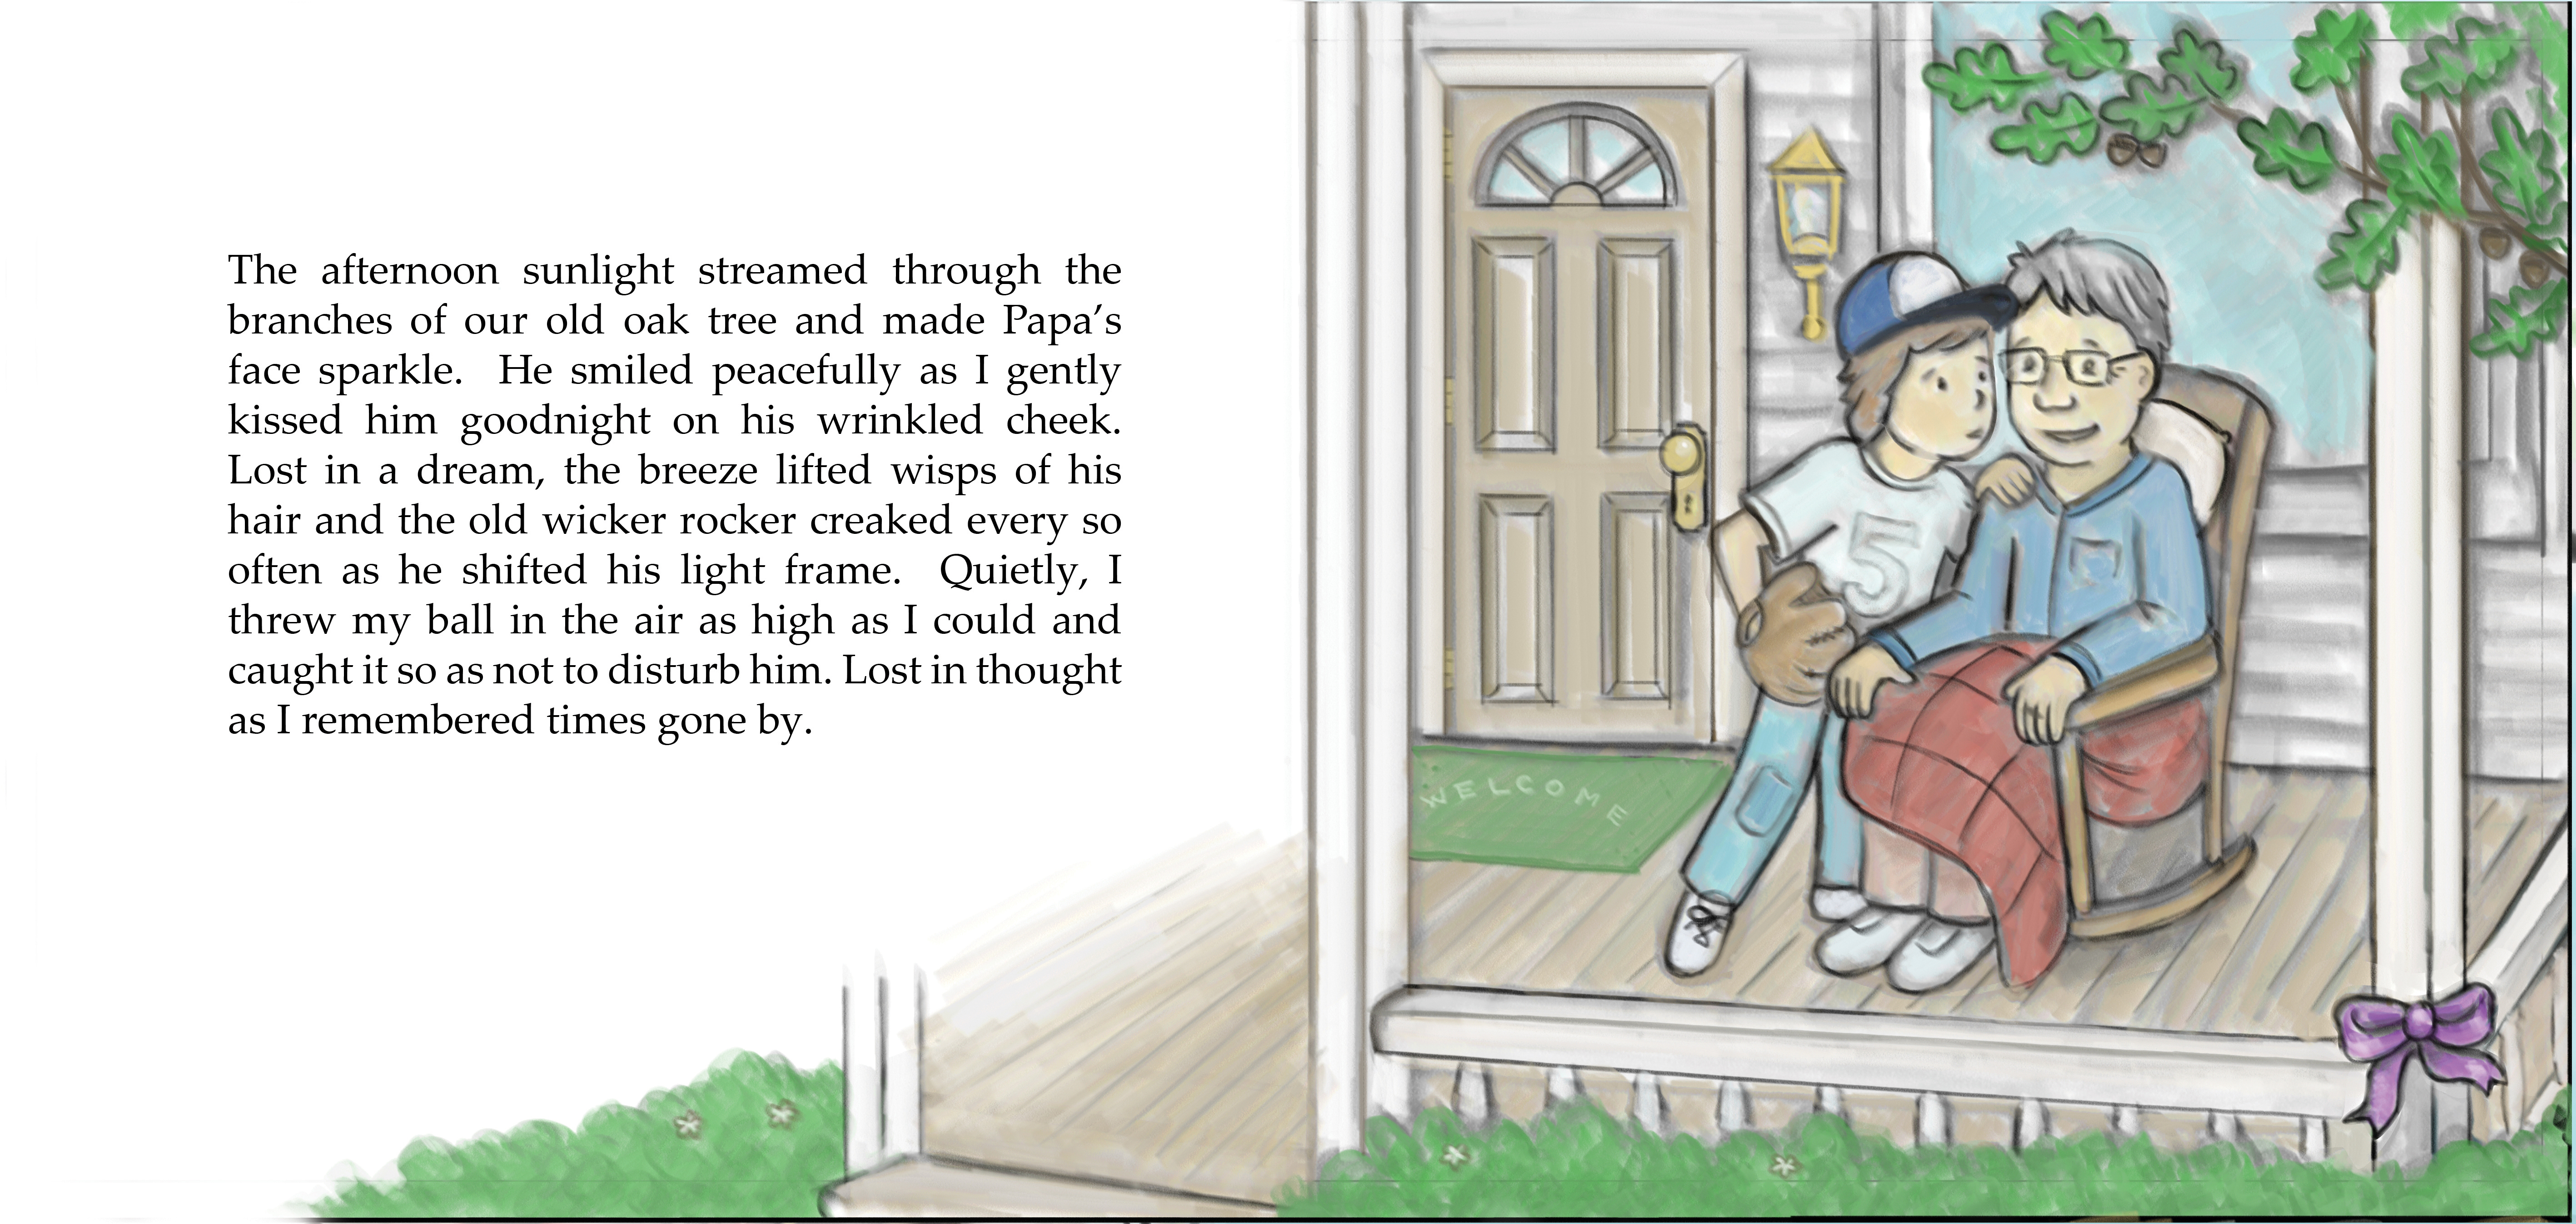 picture book page 3